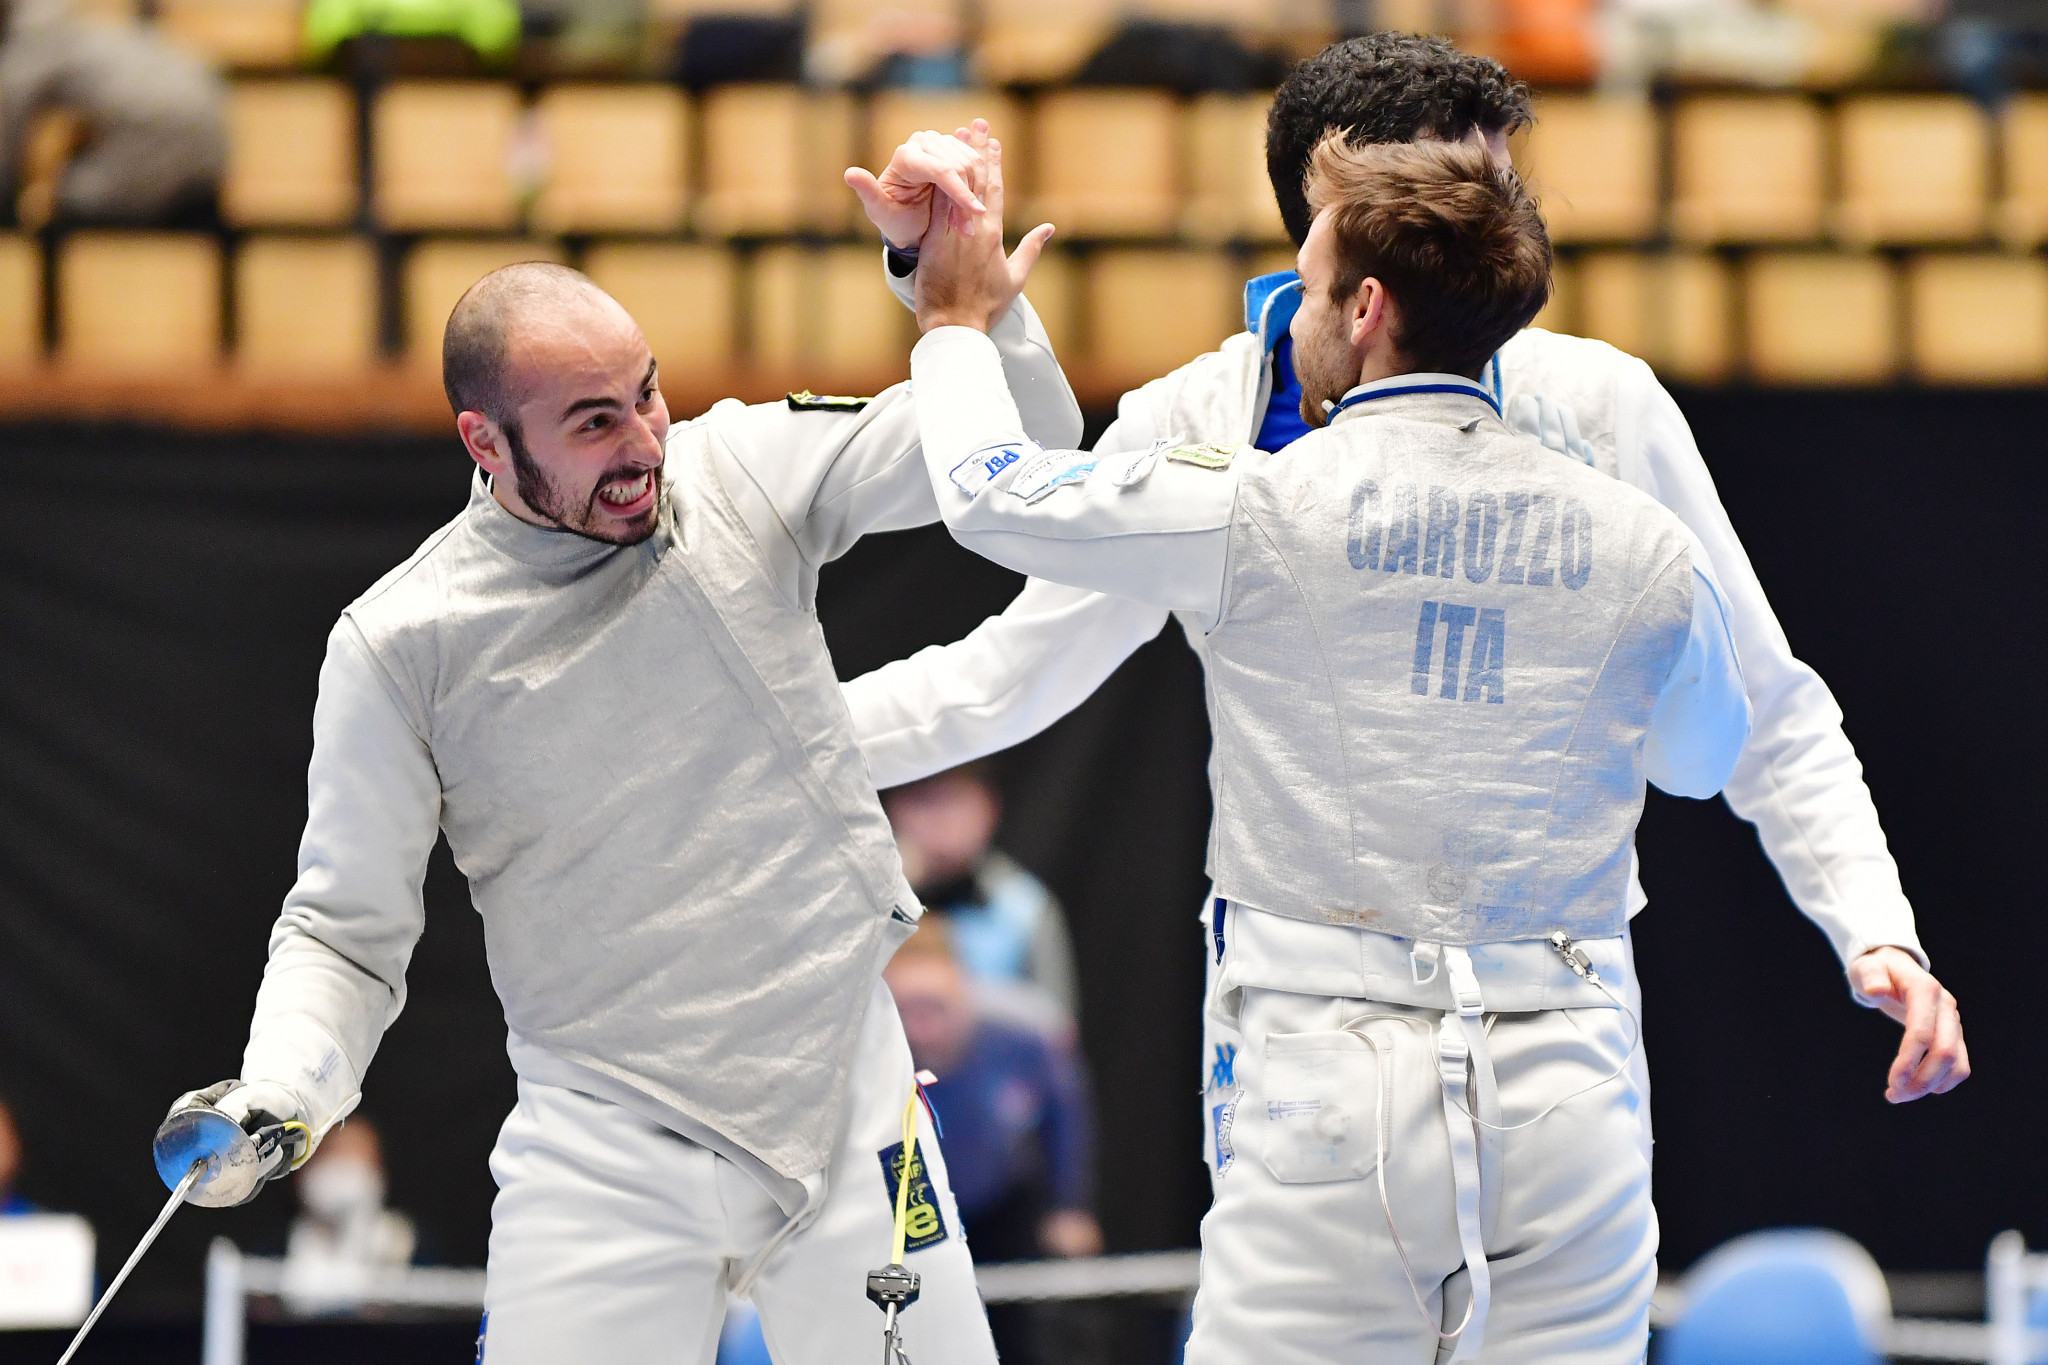 A strong Italian team has entered the FEI Men's Foil World Cup in Cairo ©Getty Images